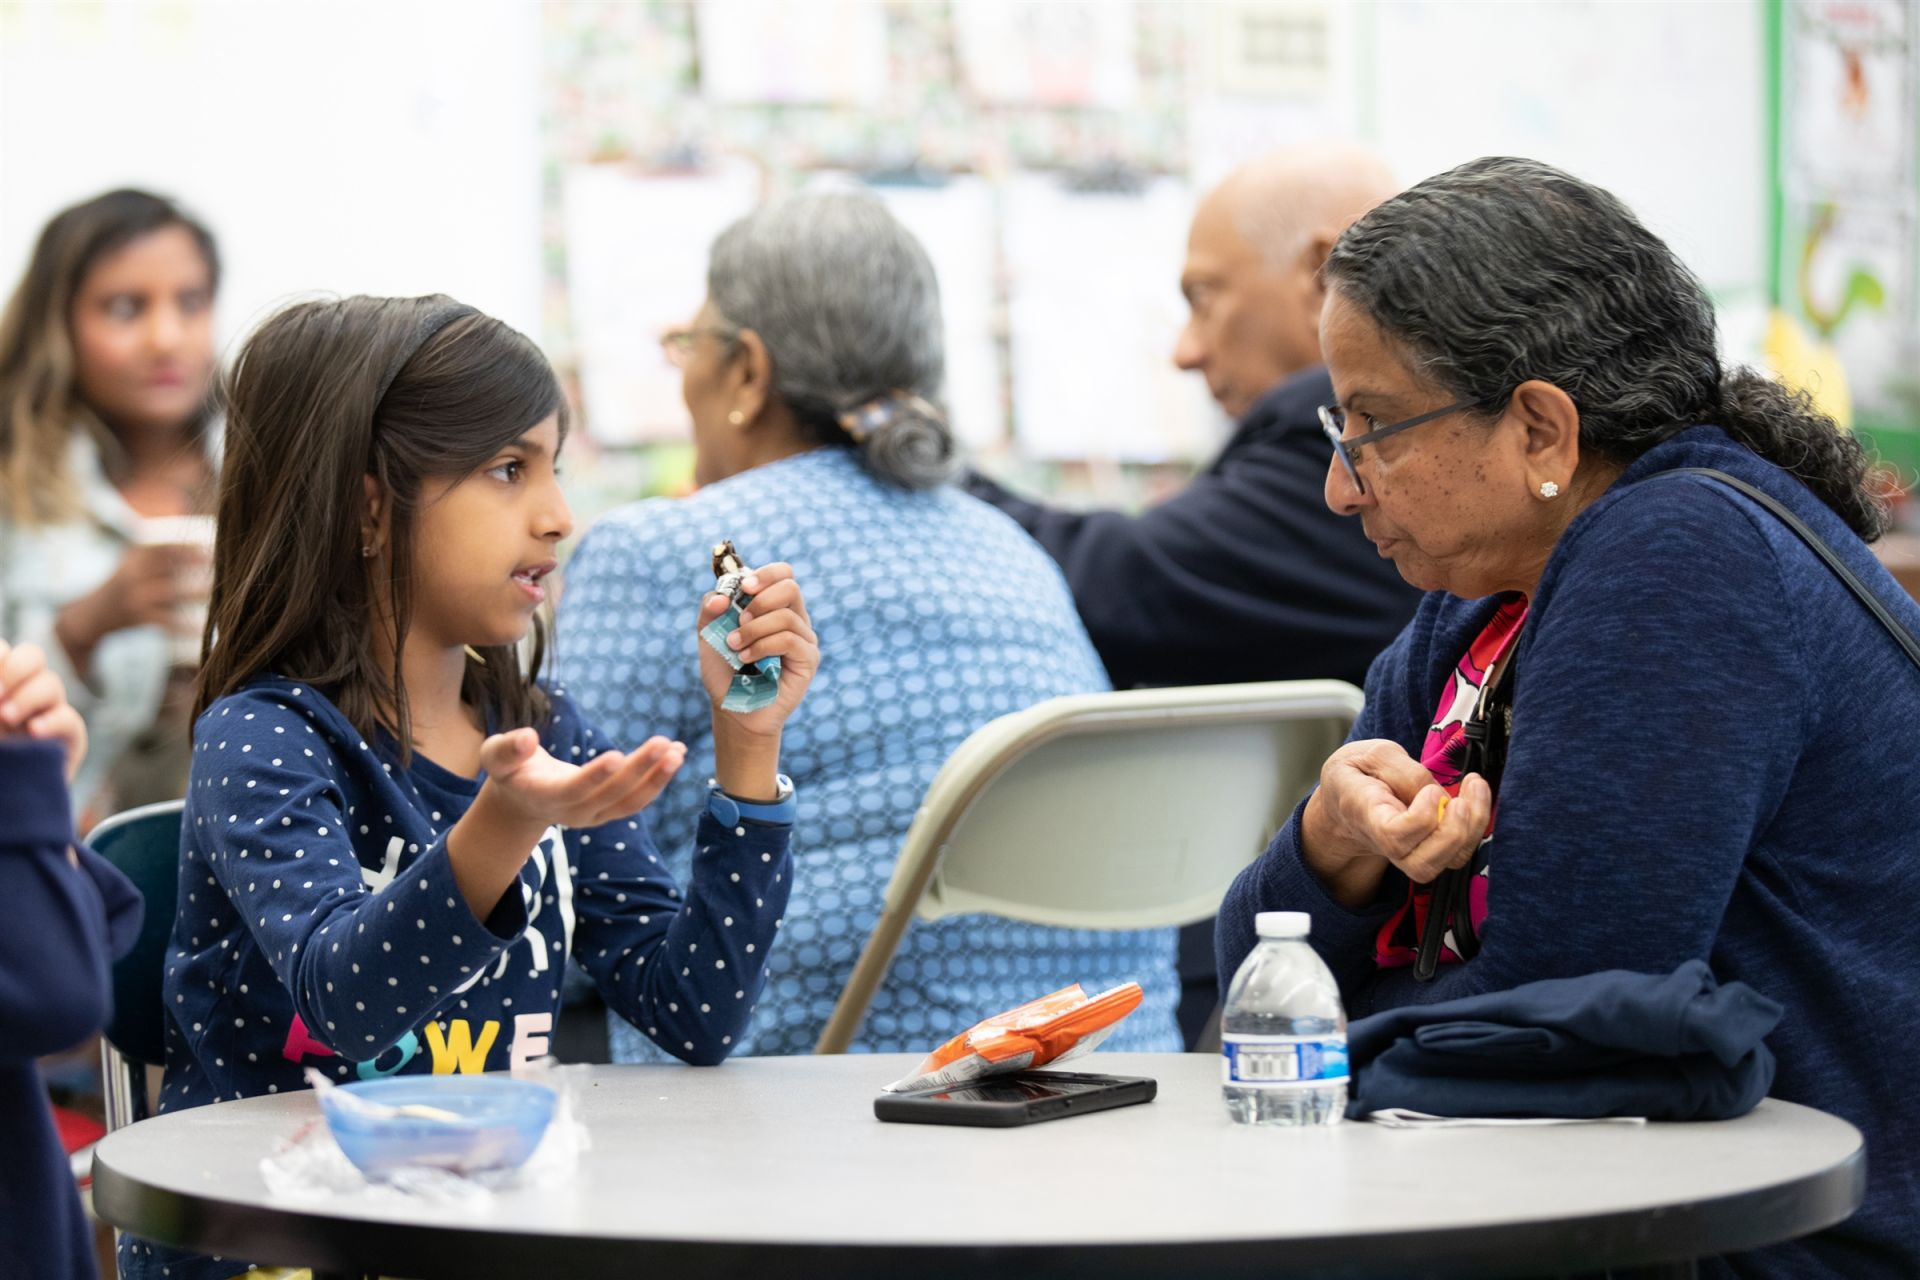 A first-grade student tells a story to her significant elder over a snack.